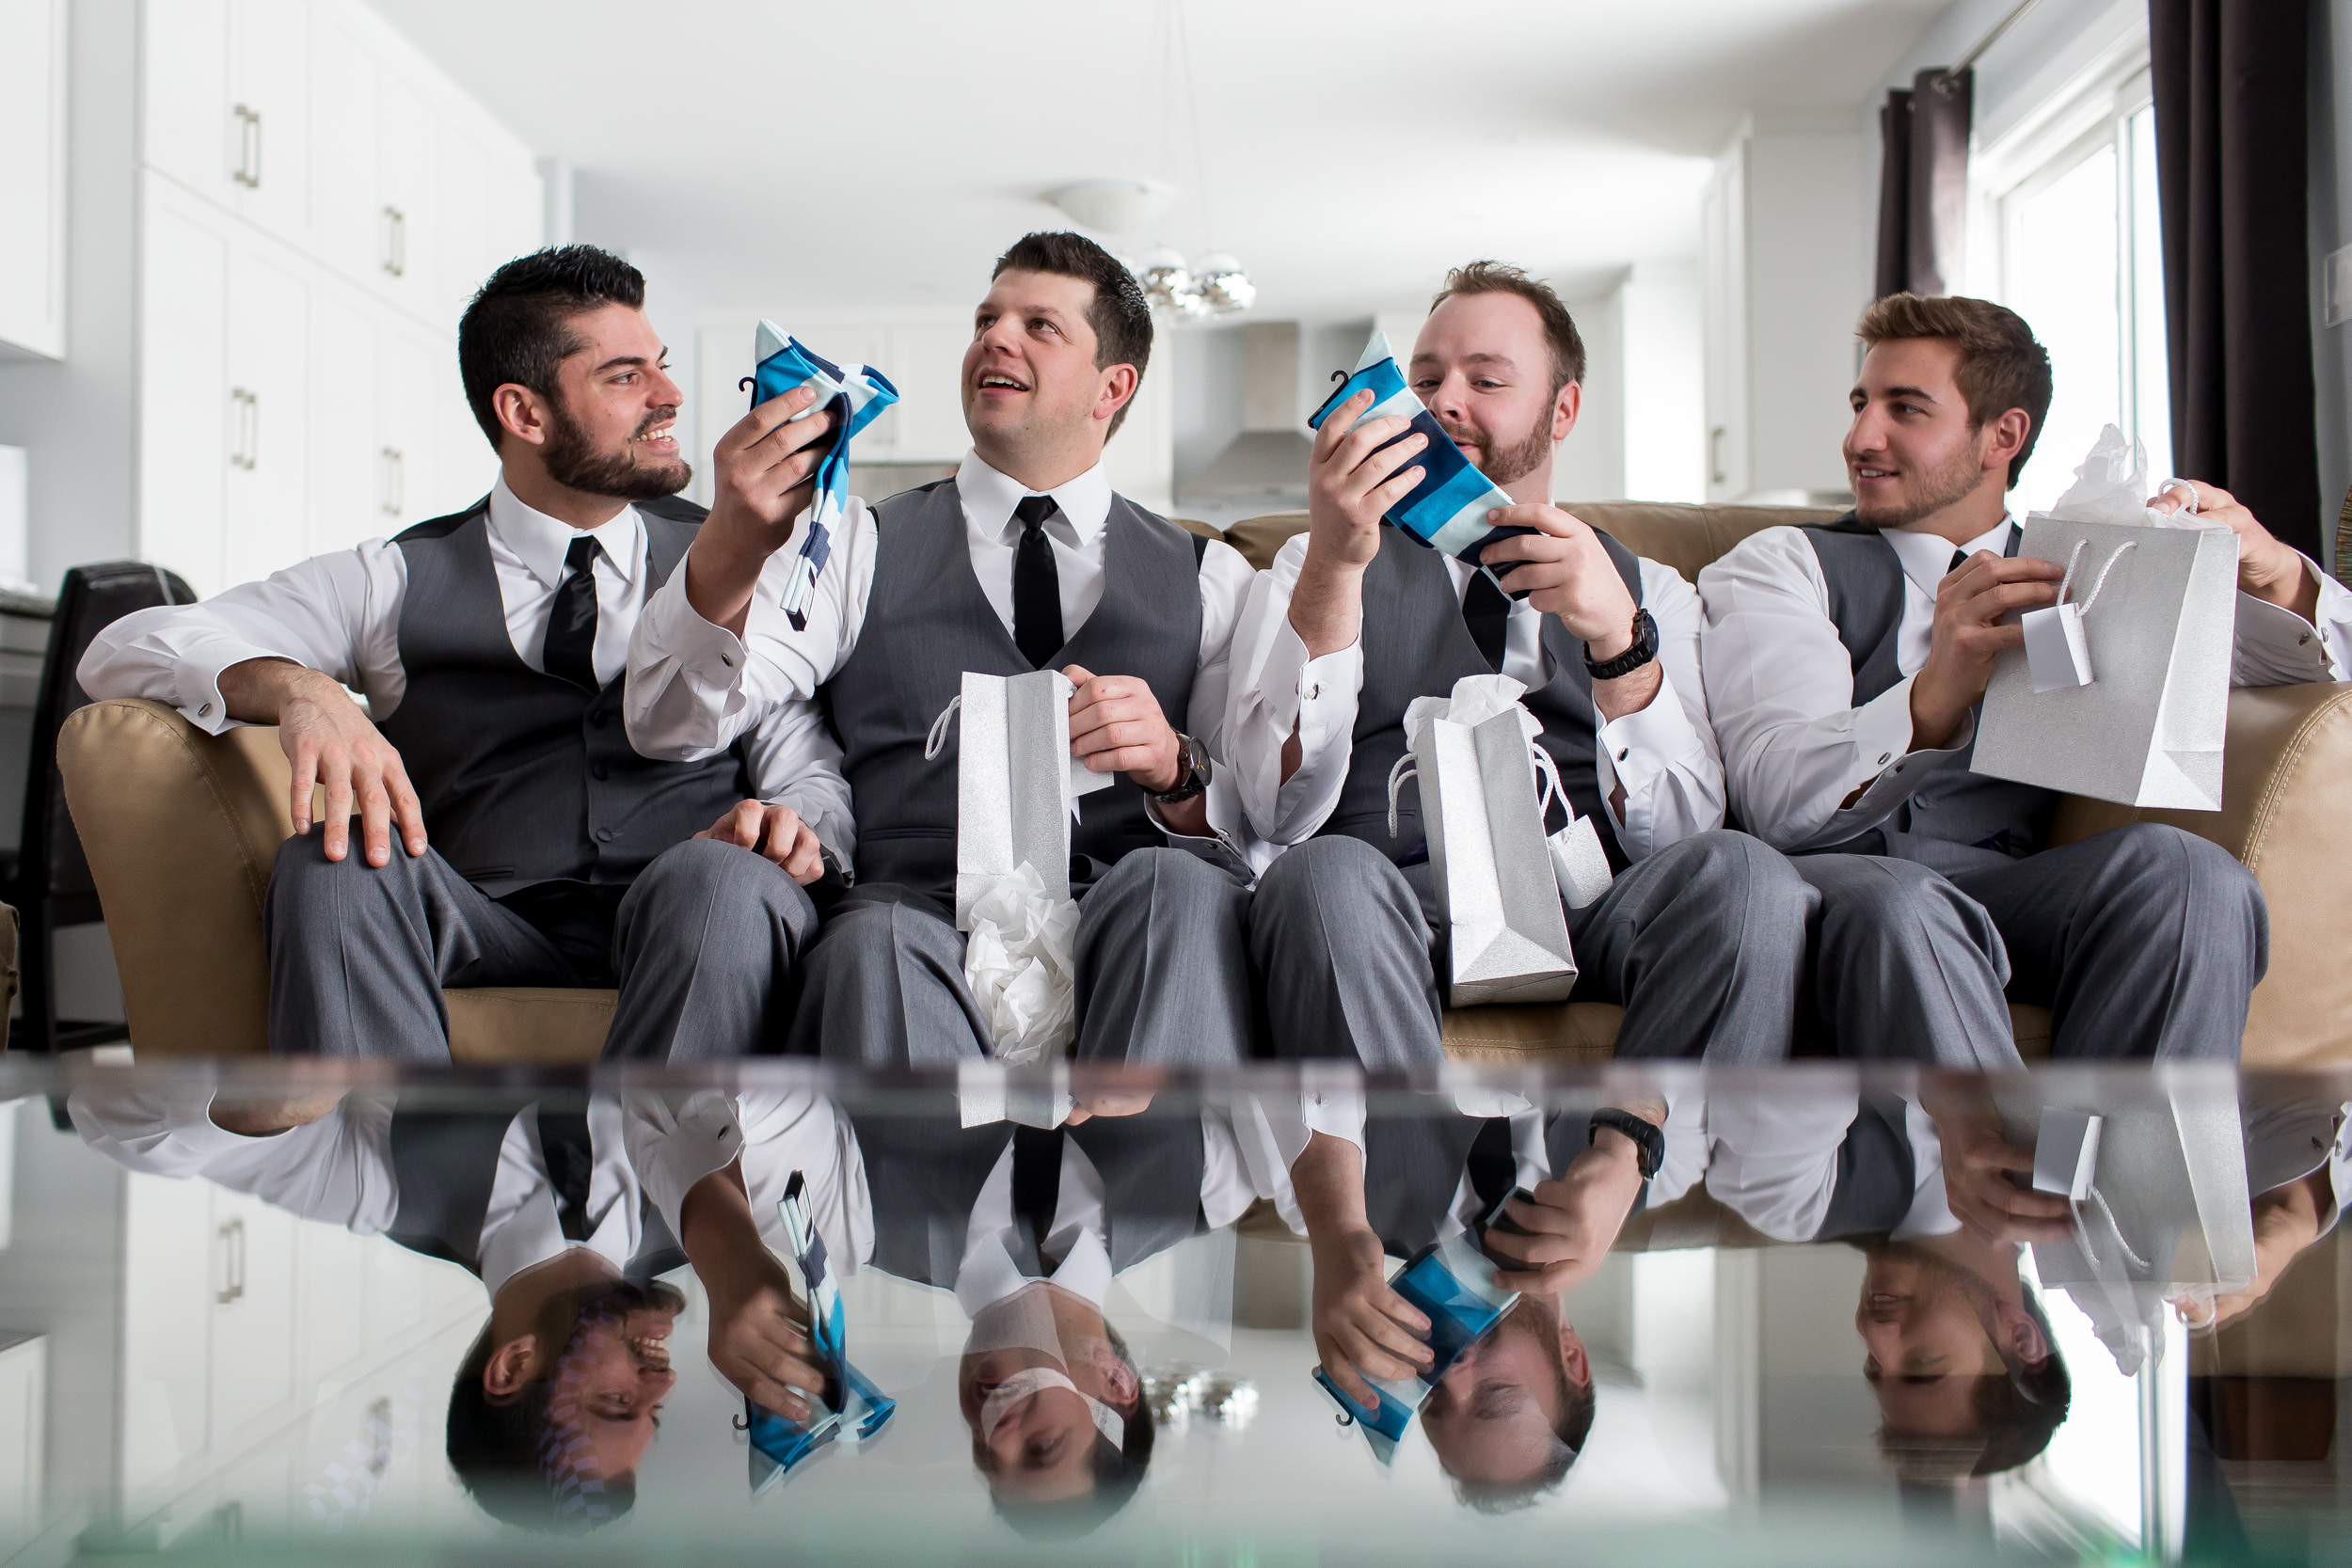 The groomsmen opening gifts